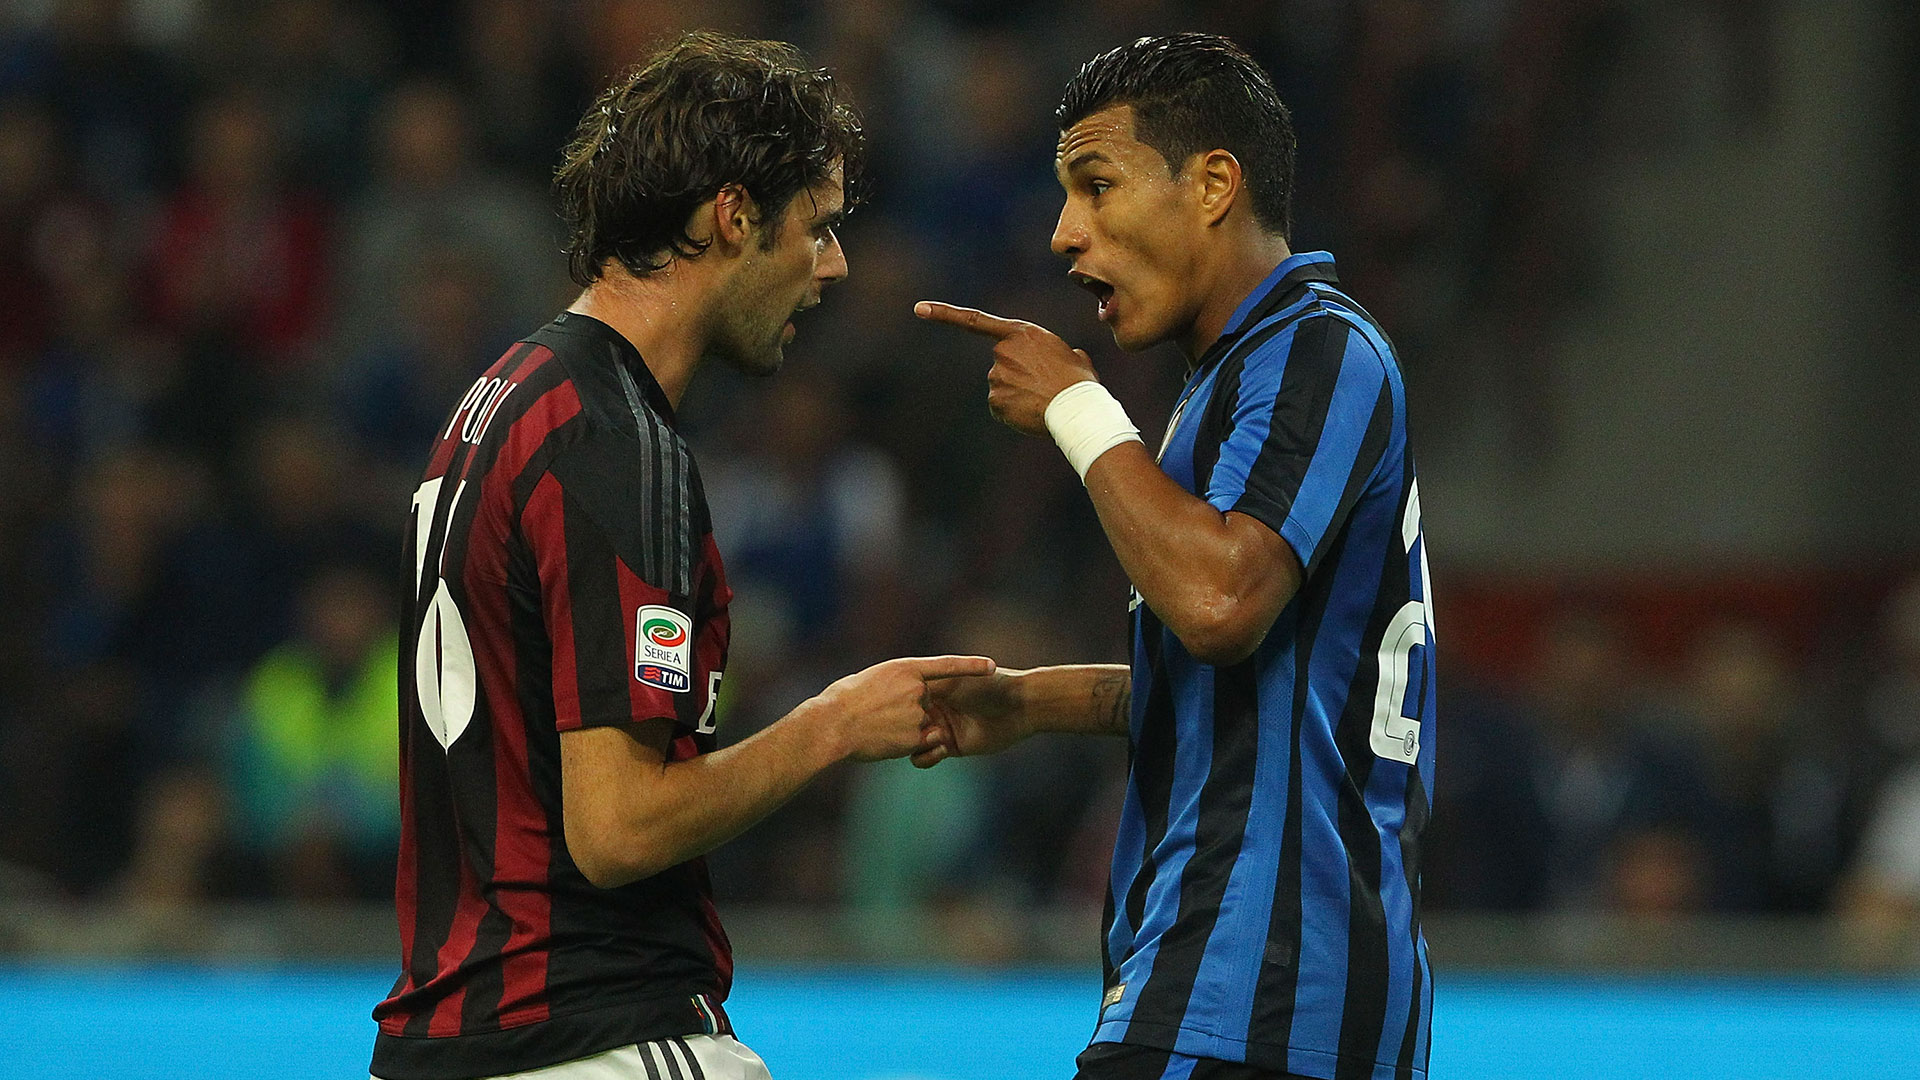 Inter milan v ac milan betting preview goal